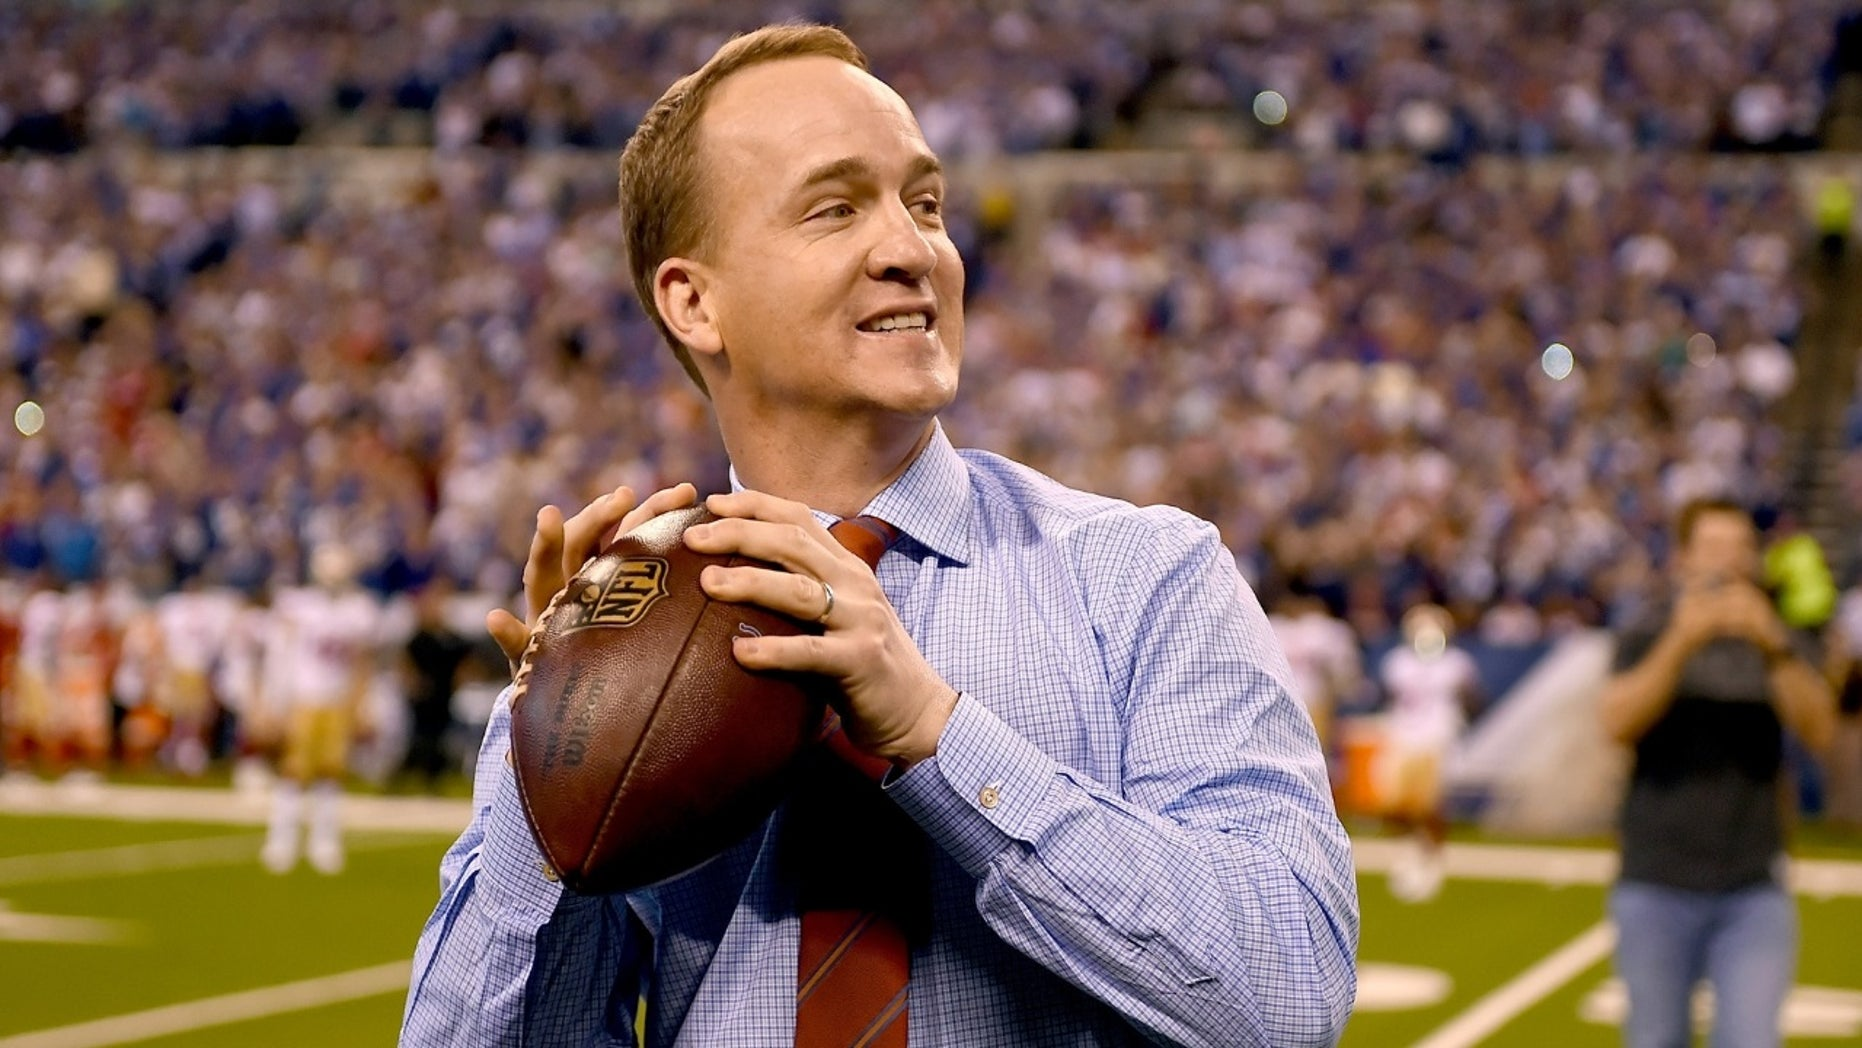 Rumors are circulating that the Jets may be making a run at Peyton Manning for their new GM position